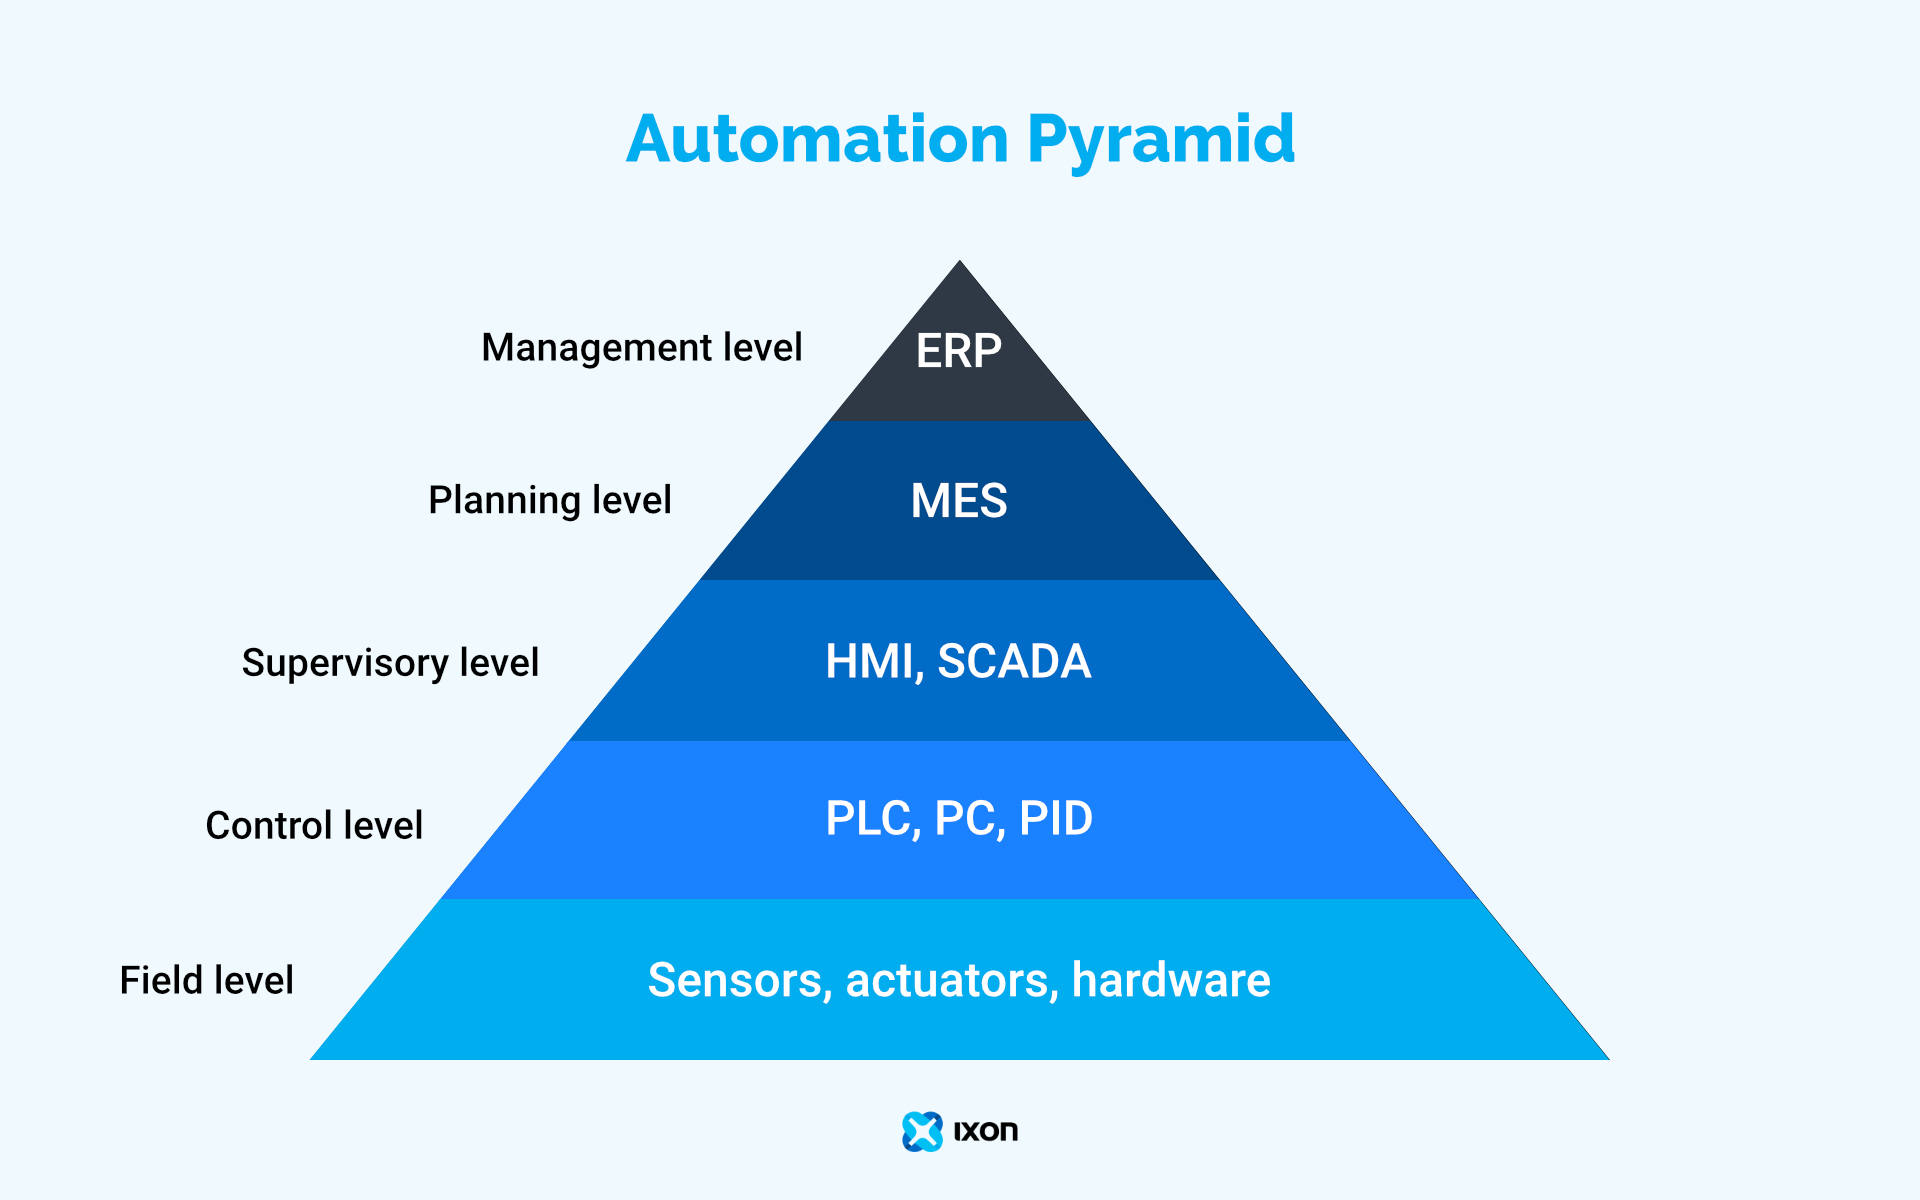 Automation Pyramid: get machine data from field level to management level - IXON Cloud